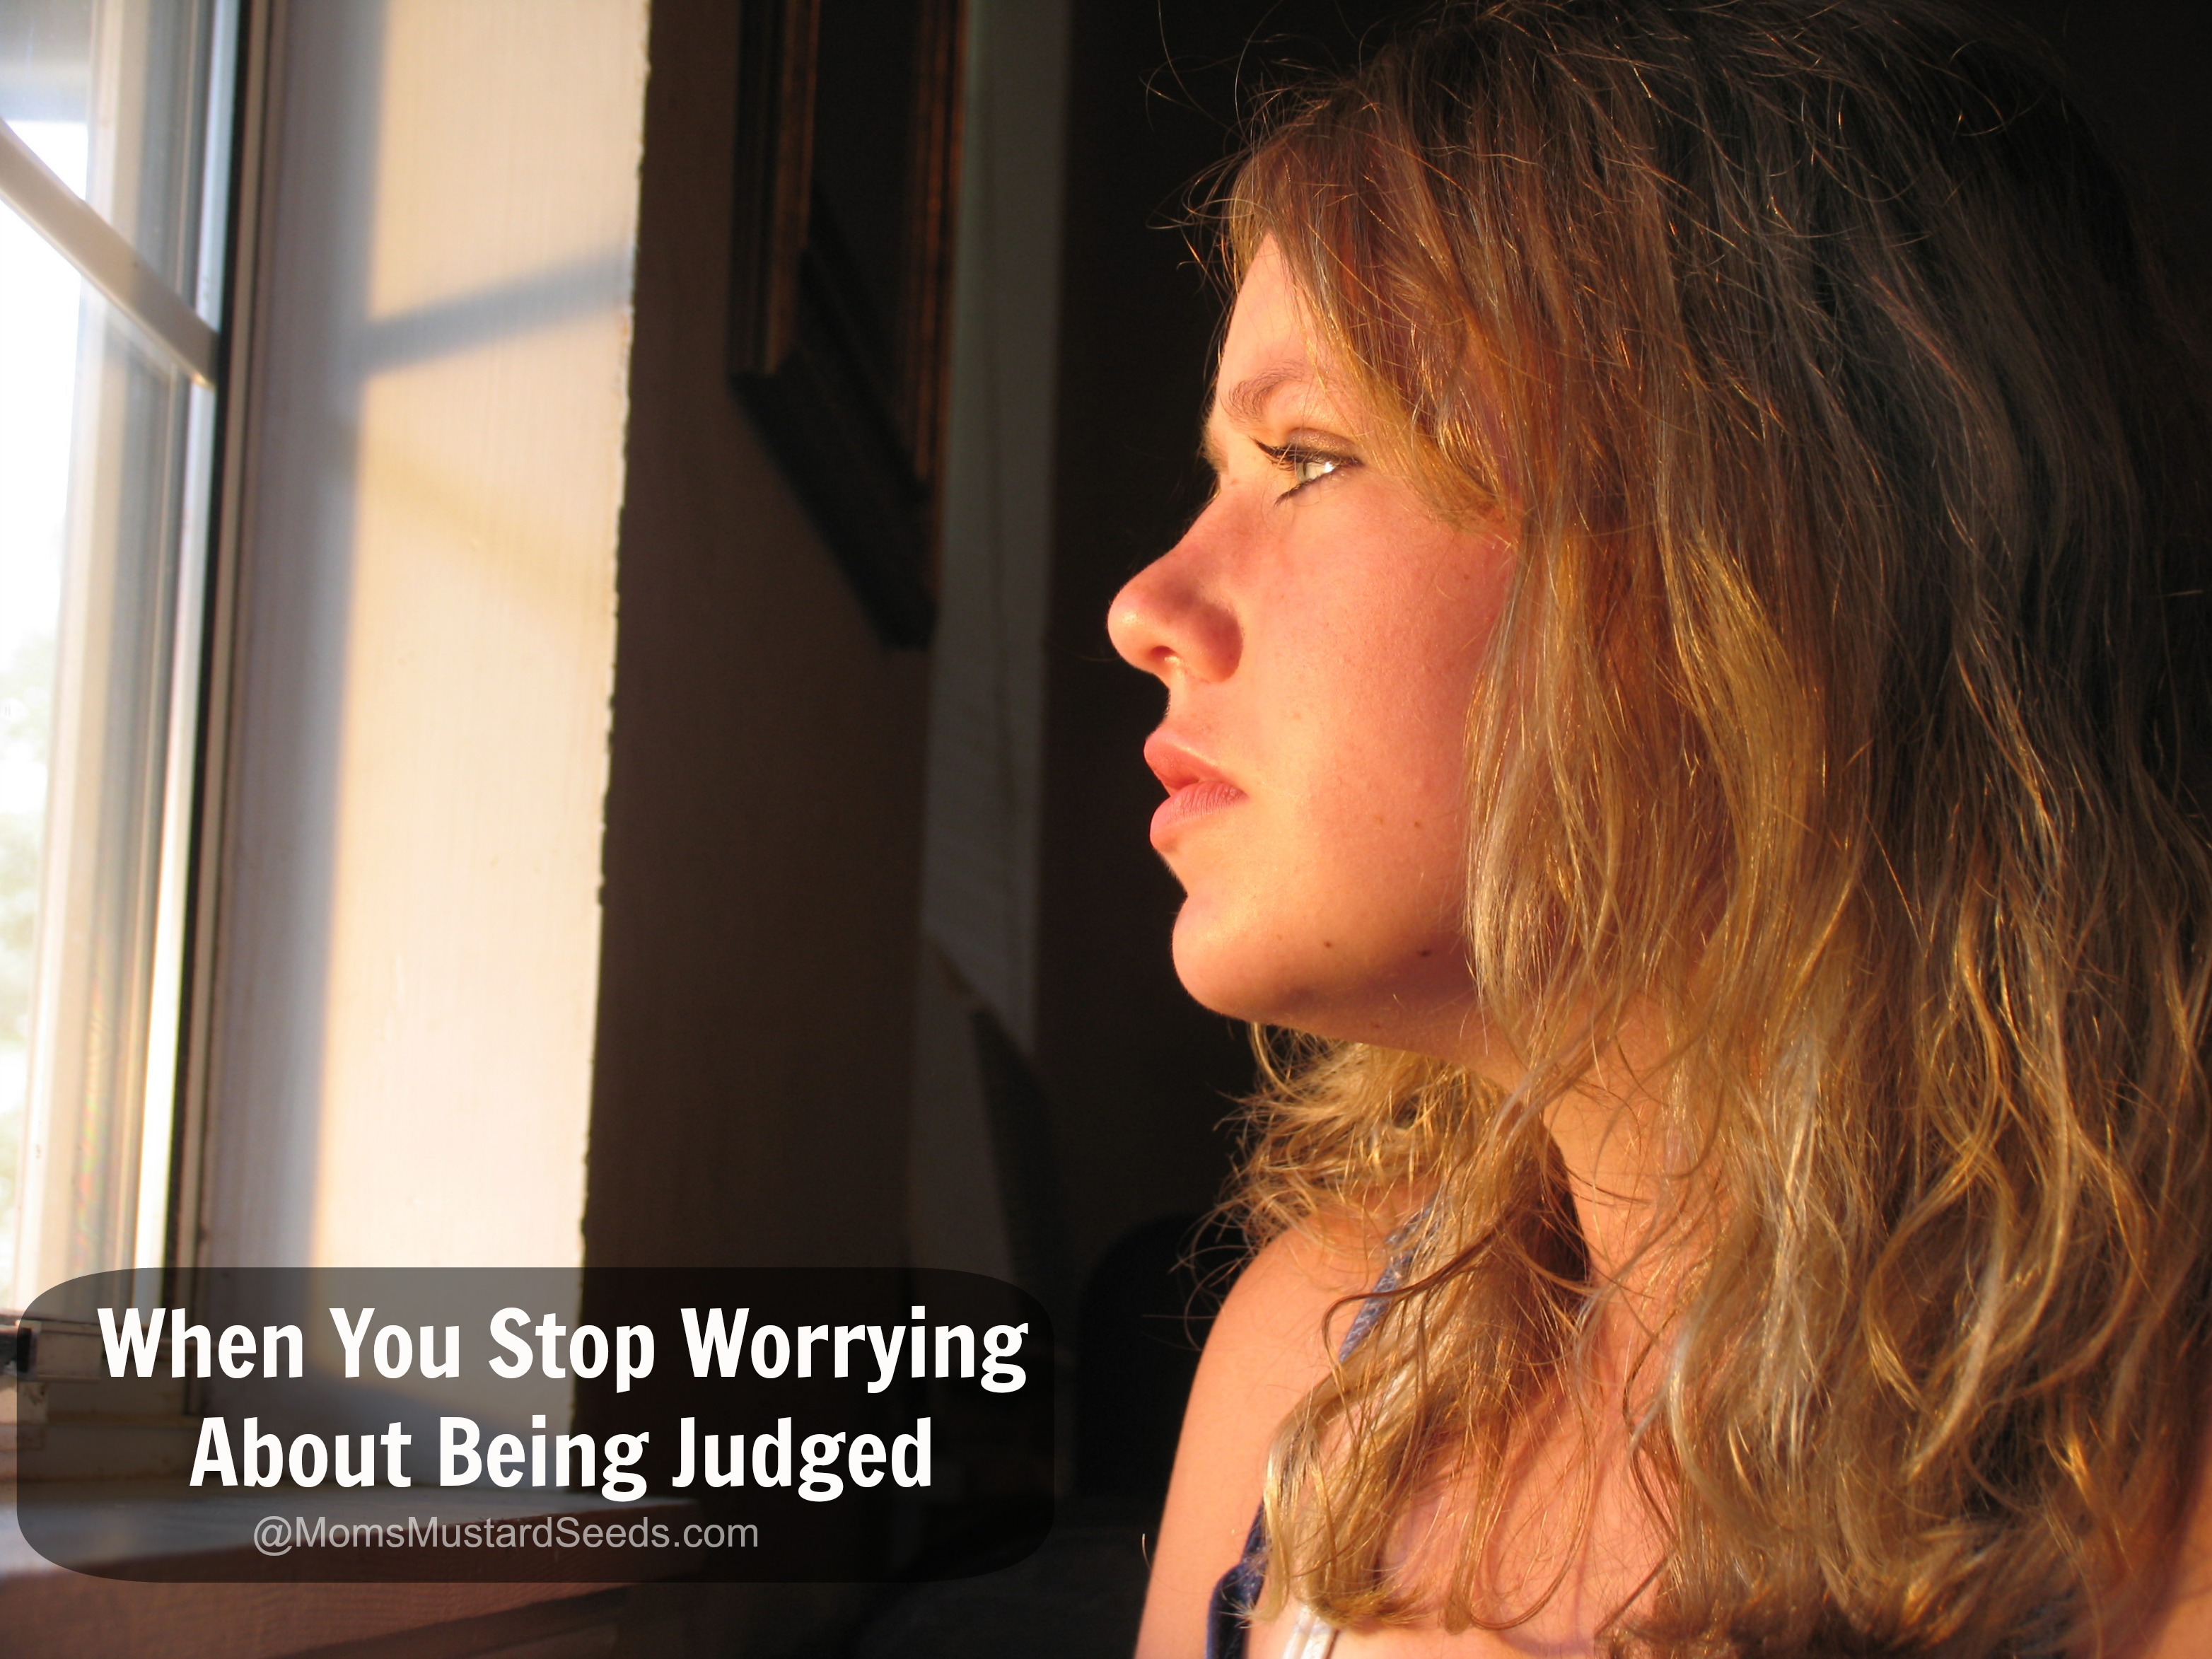 When You Stop Worrying About Being Judged